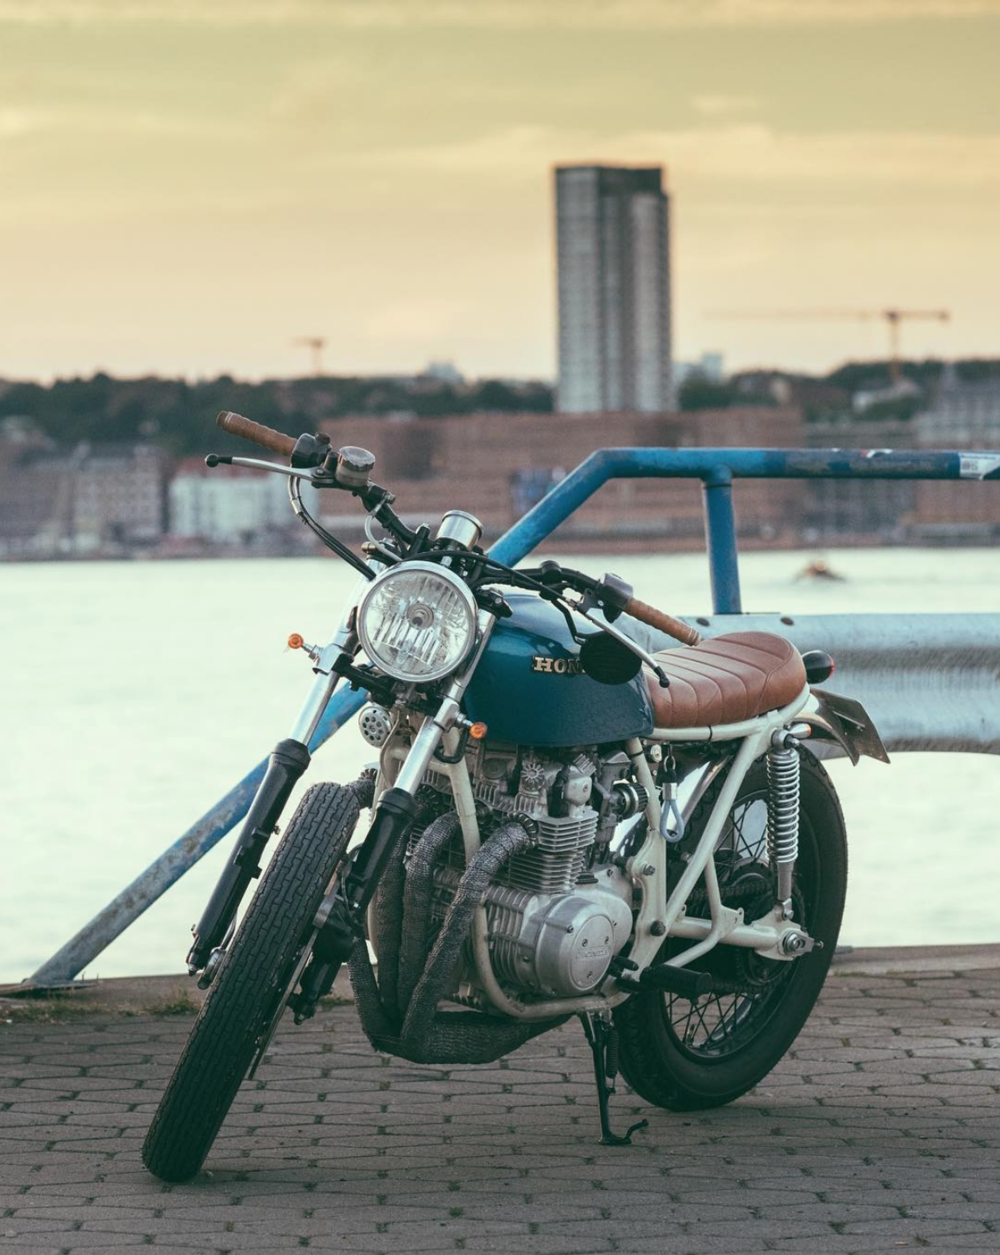 Jörg's Ride | TheMotoSocialHAMBURG